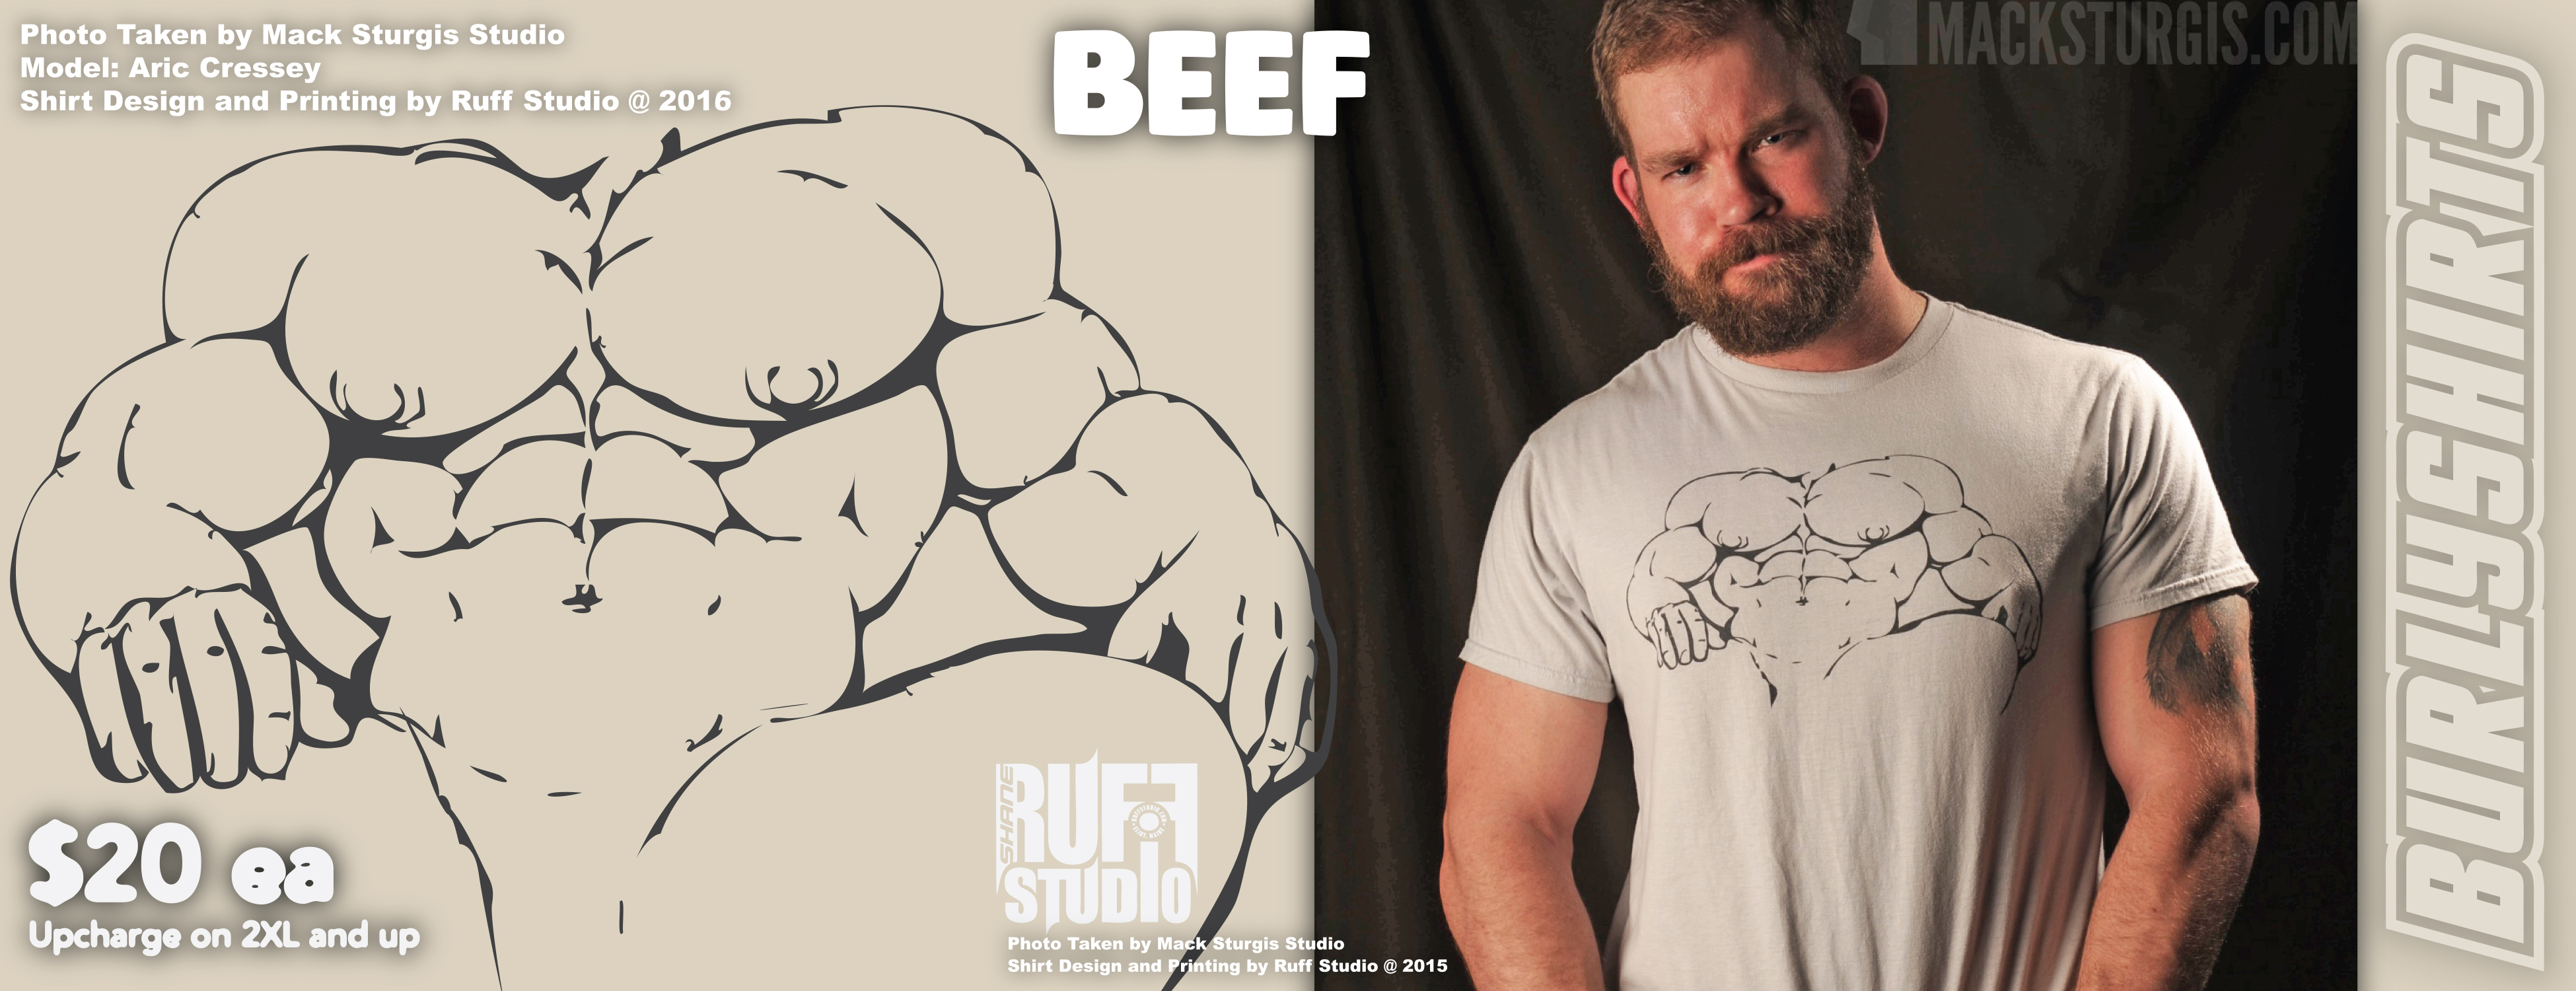 beef-ad-1a.jpg